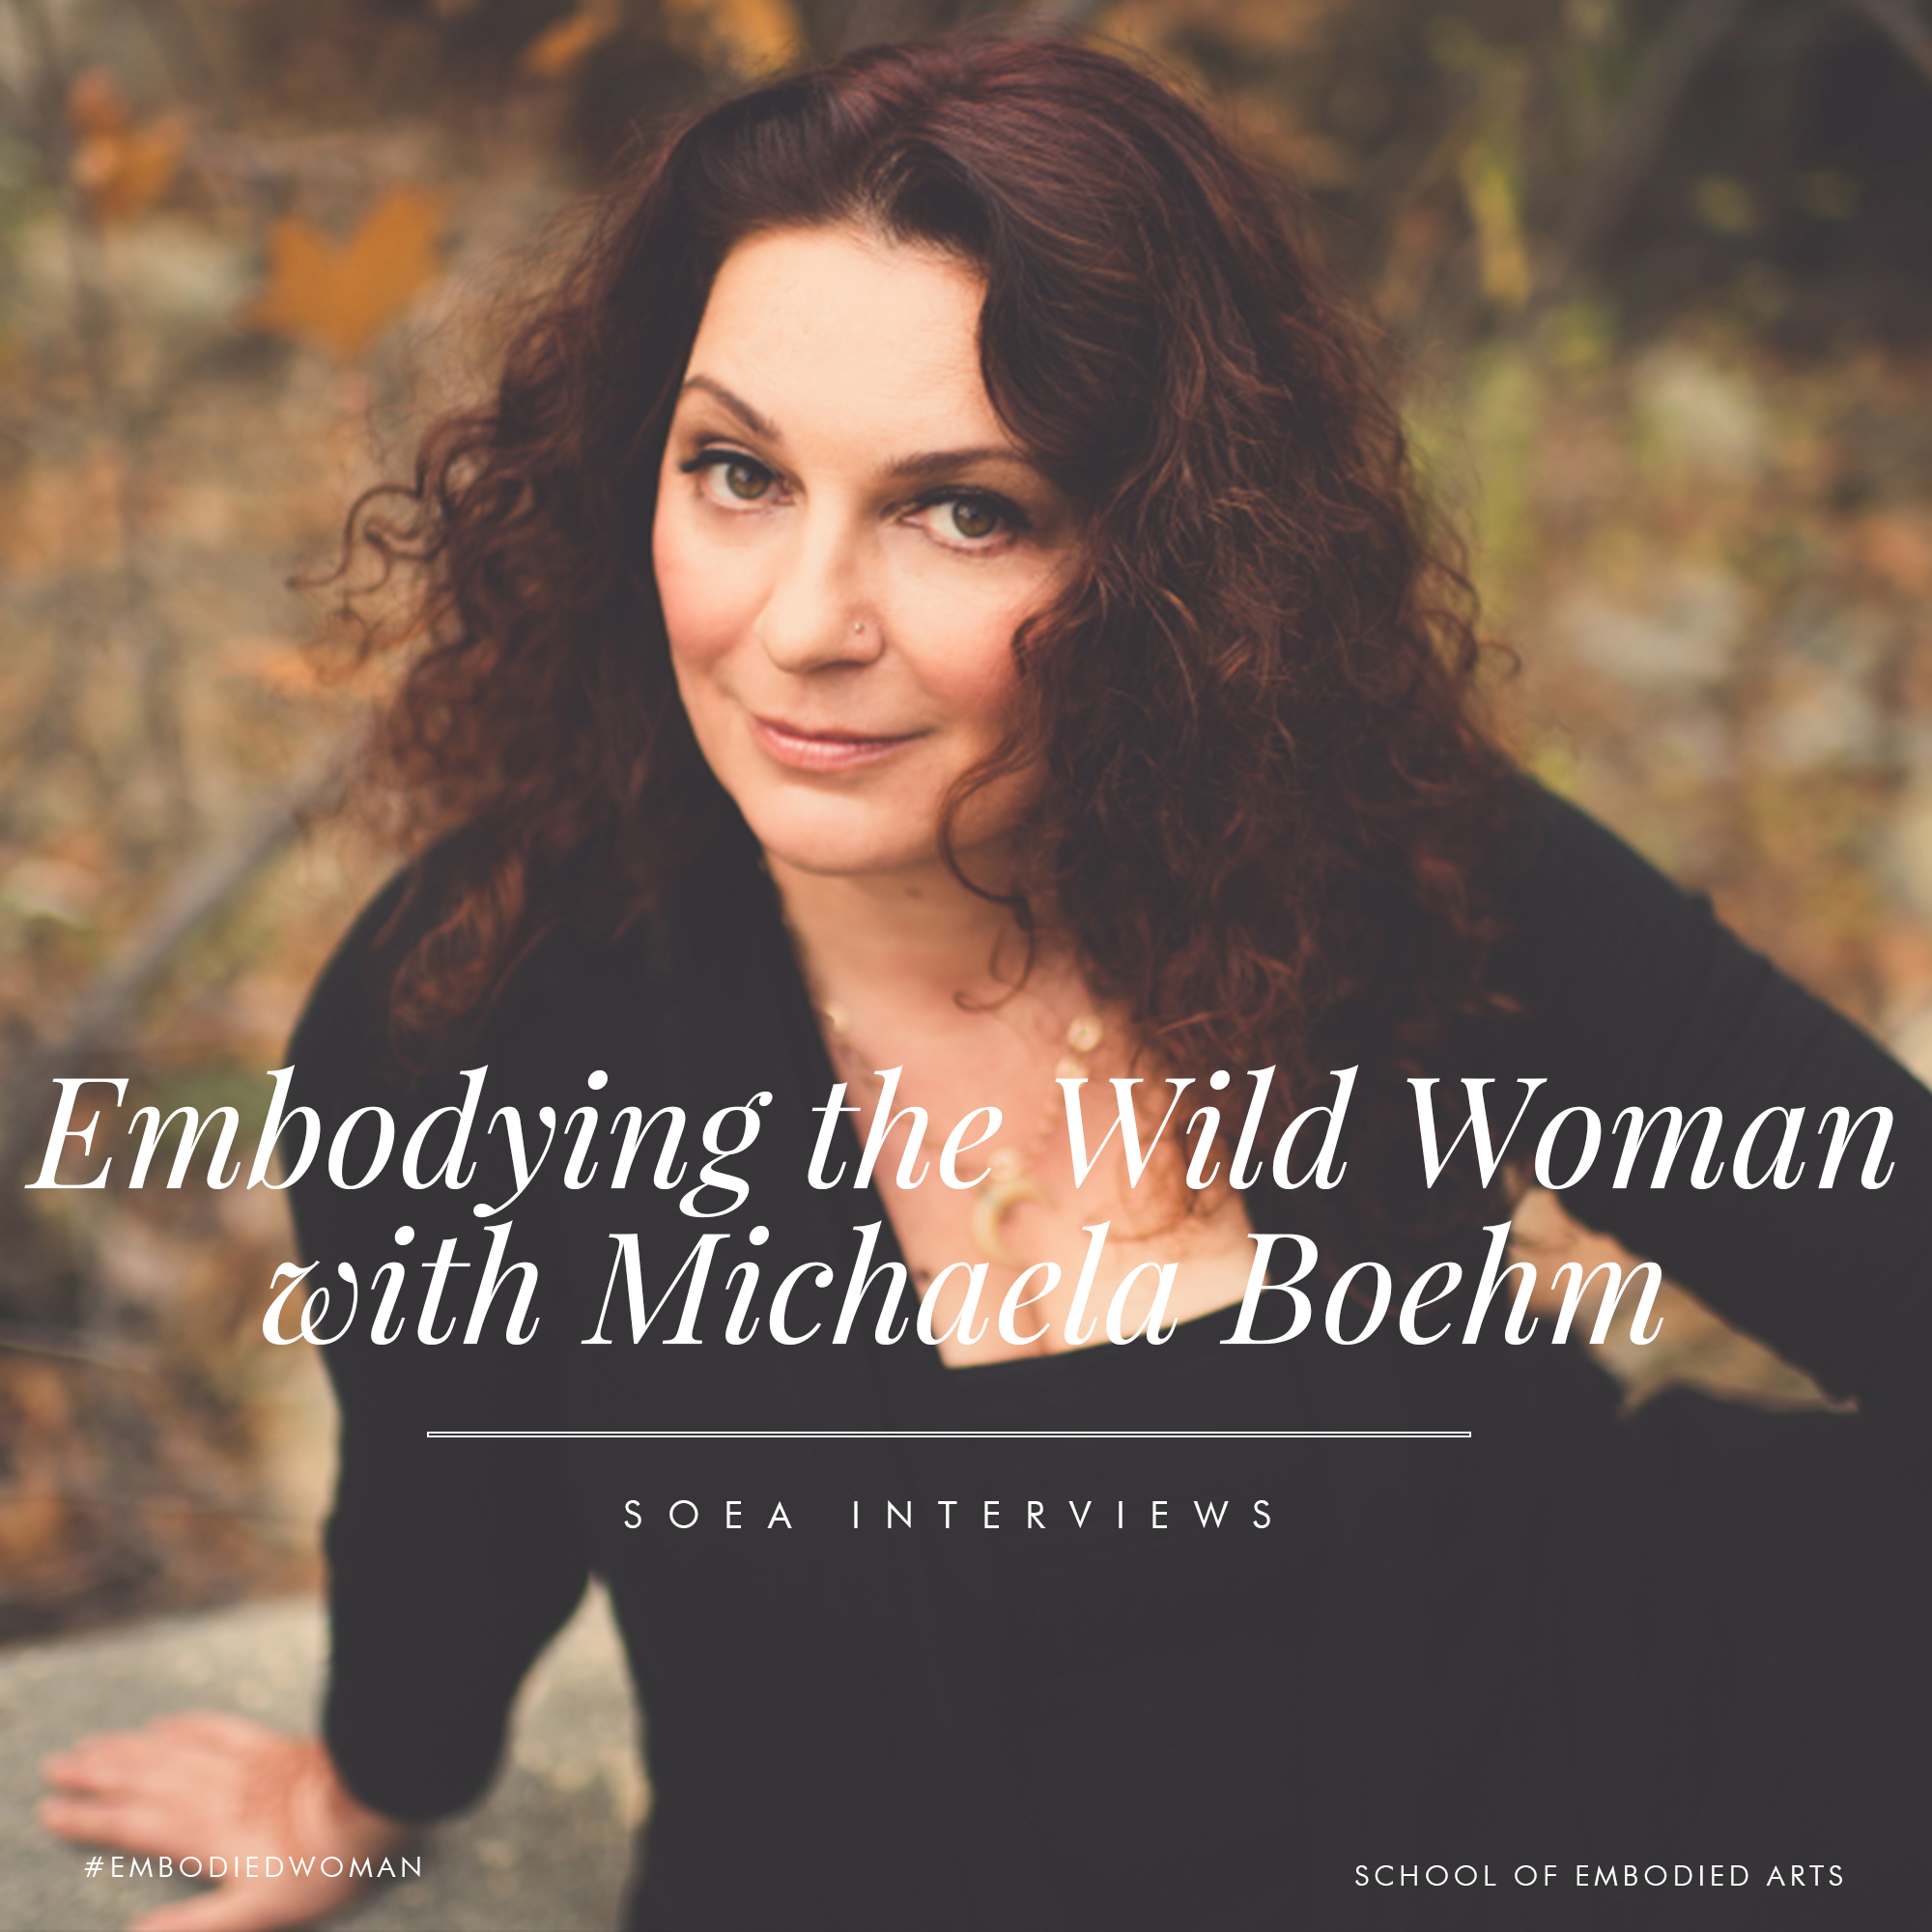 Embodying the Wild Woman with Michaela Boehm